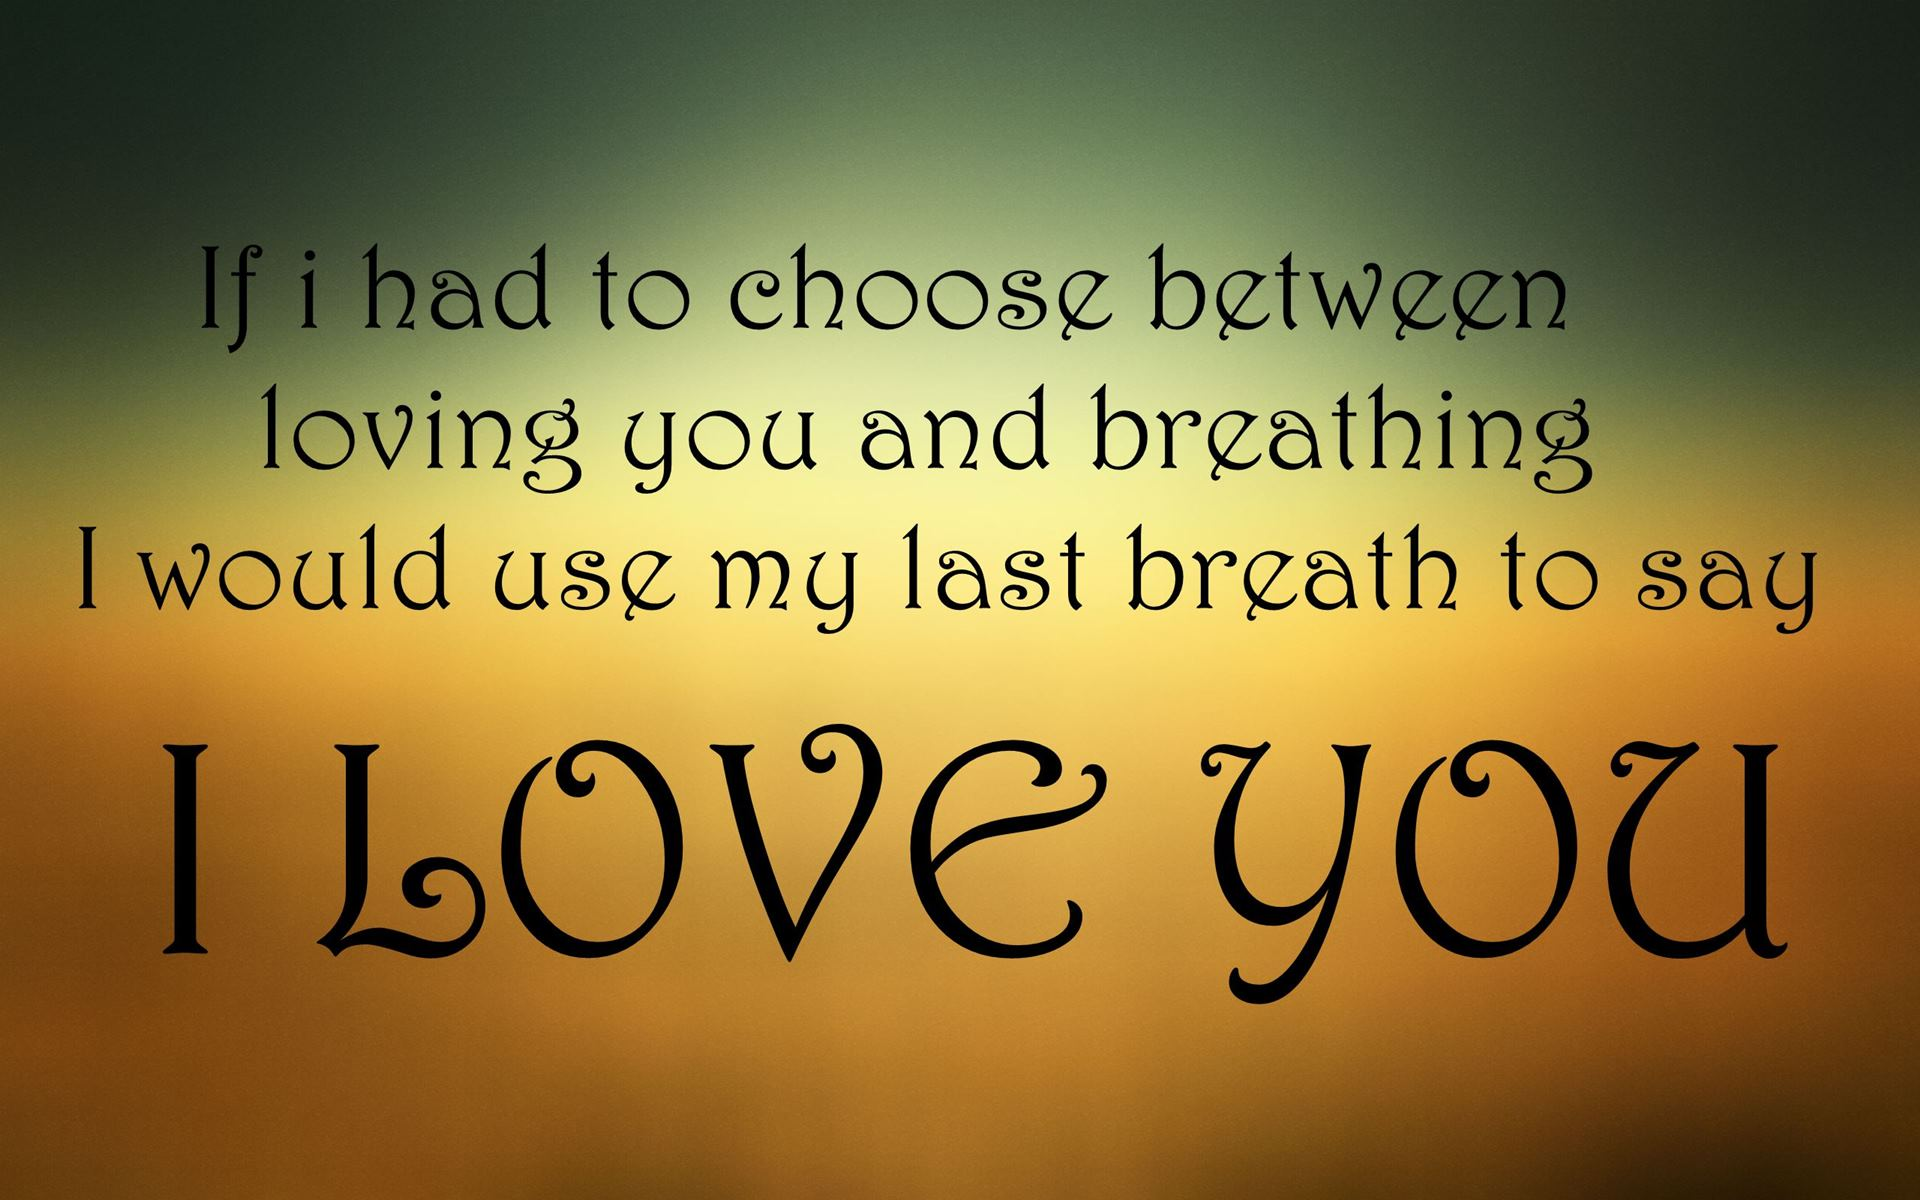 Hd wallpaper quotes on love -  Quotes About Love Wallpaper